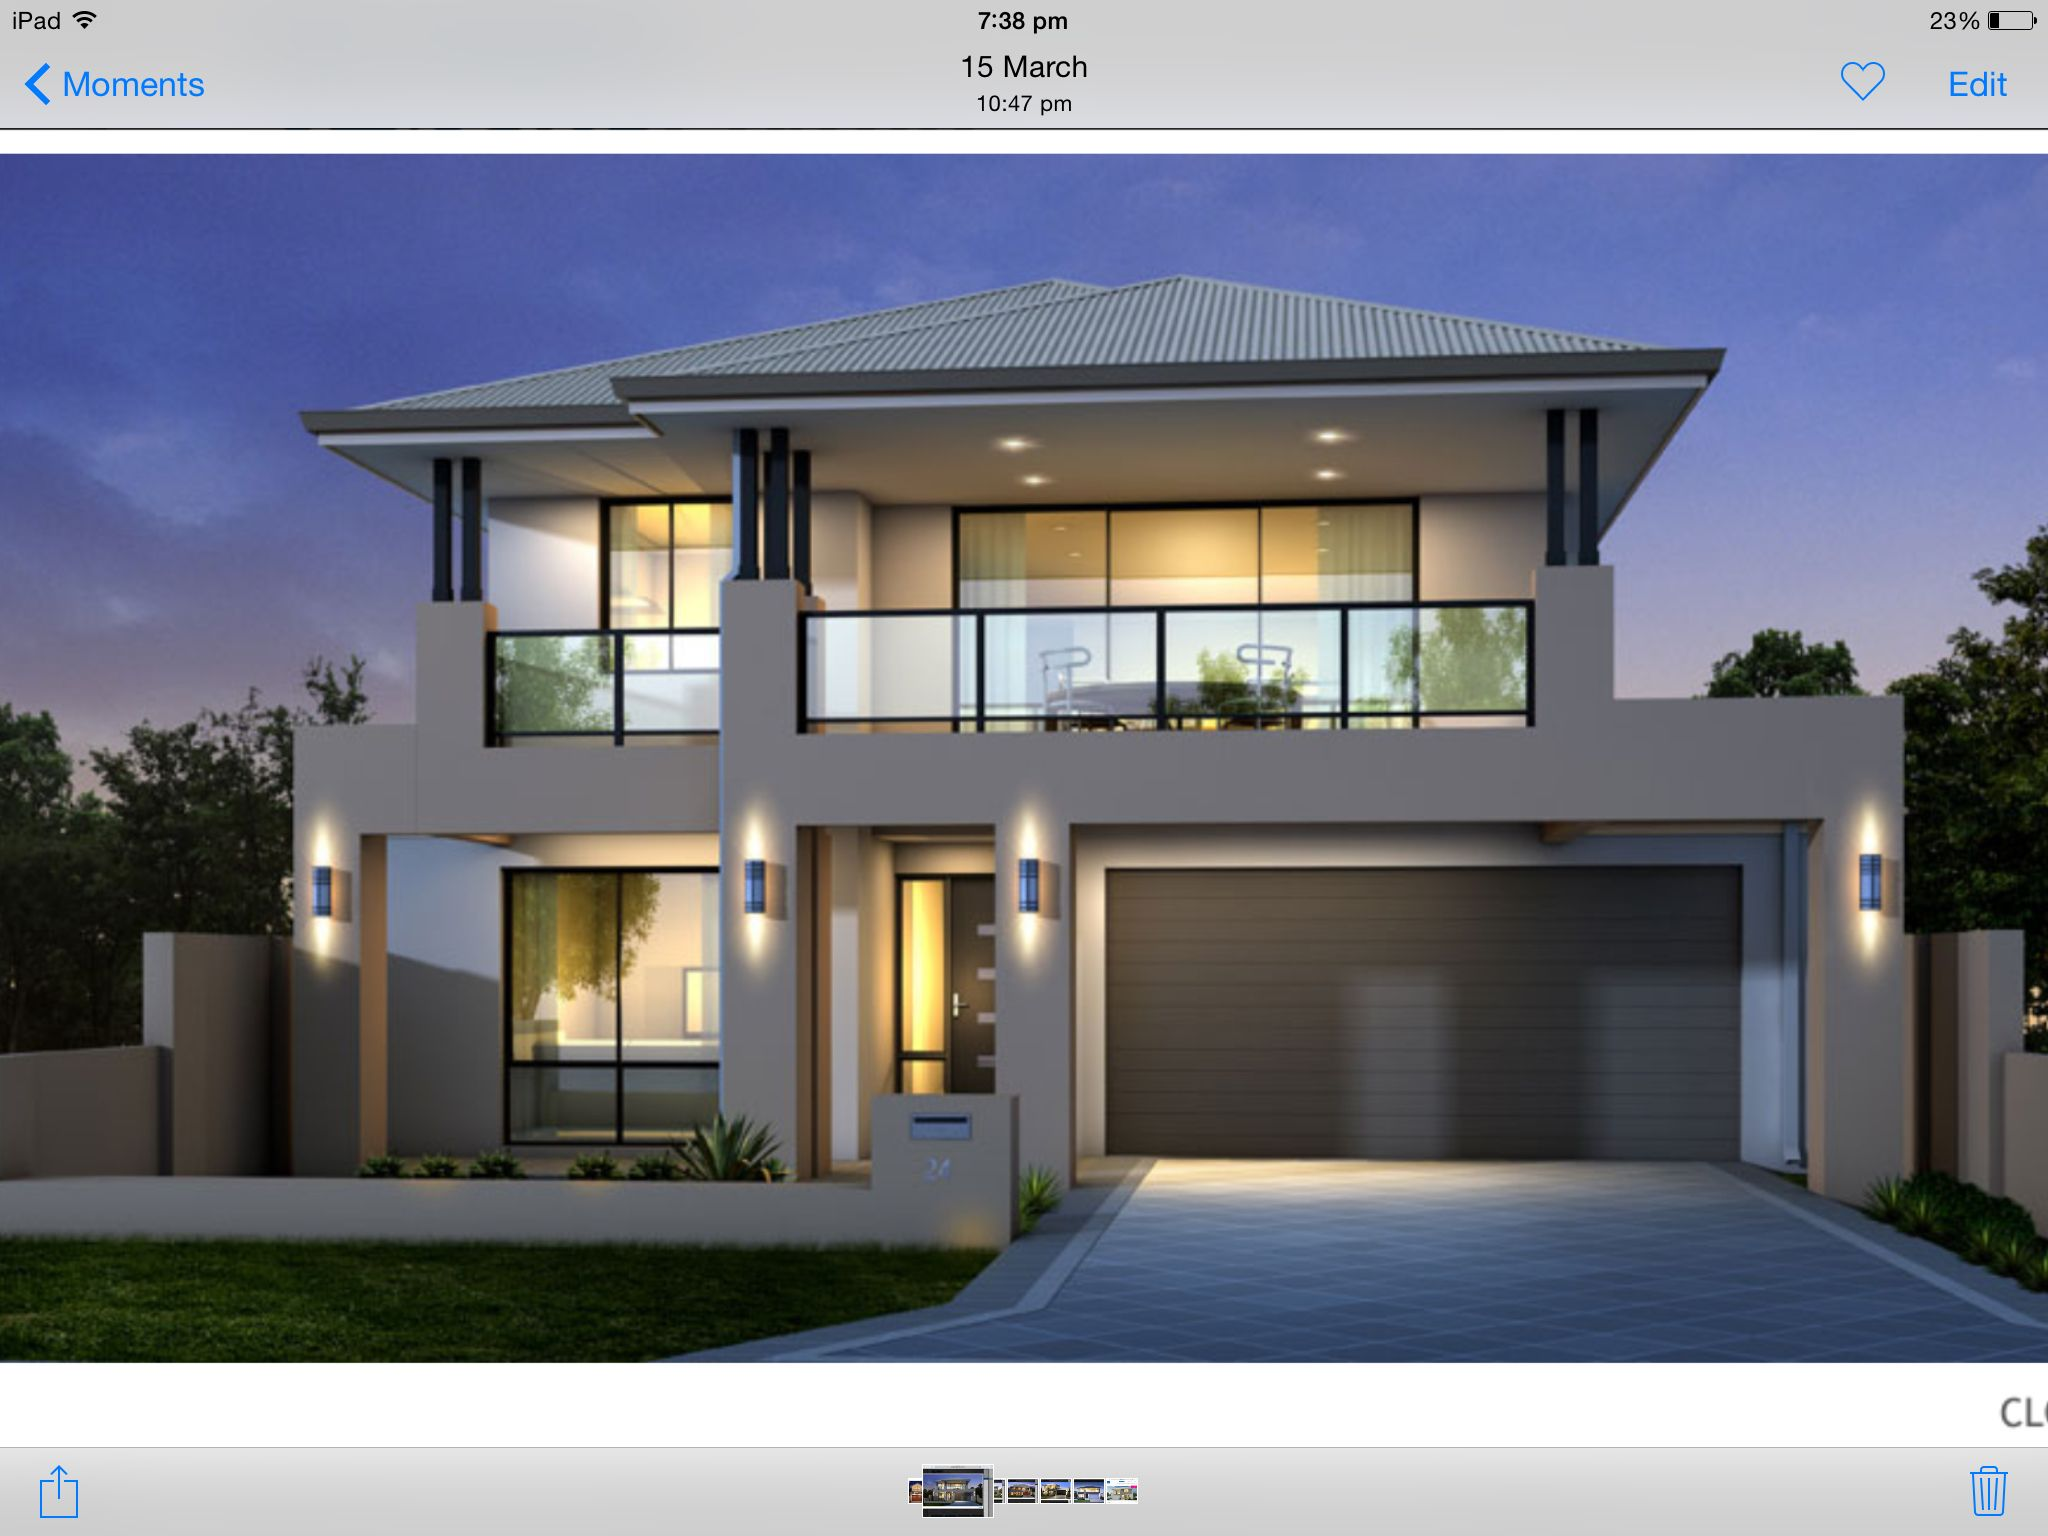 Two storey house facade grey and black balcony over garage glass rail modern sleek house - Modern two story houses ...